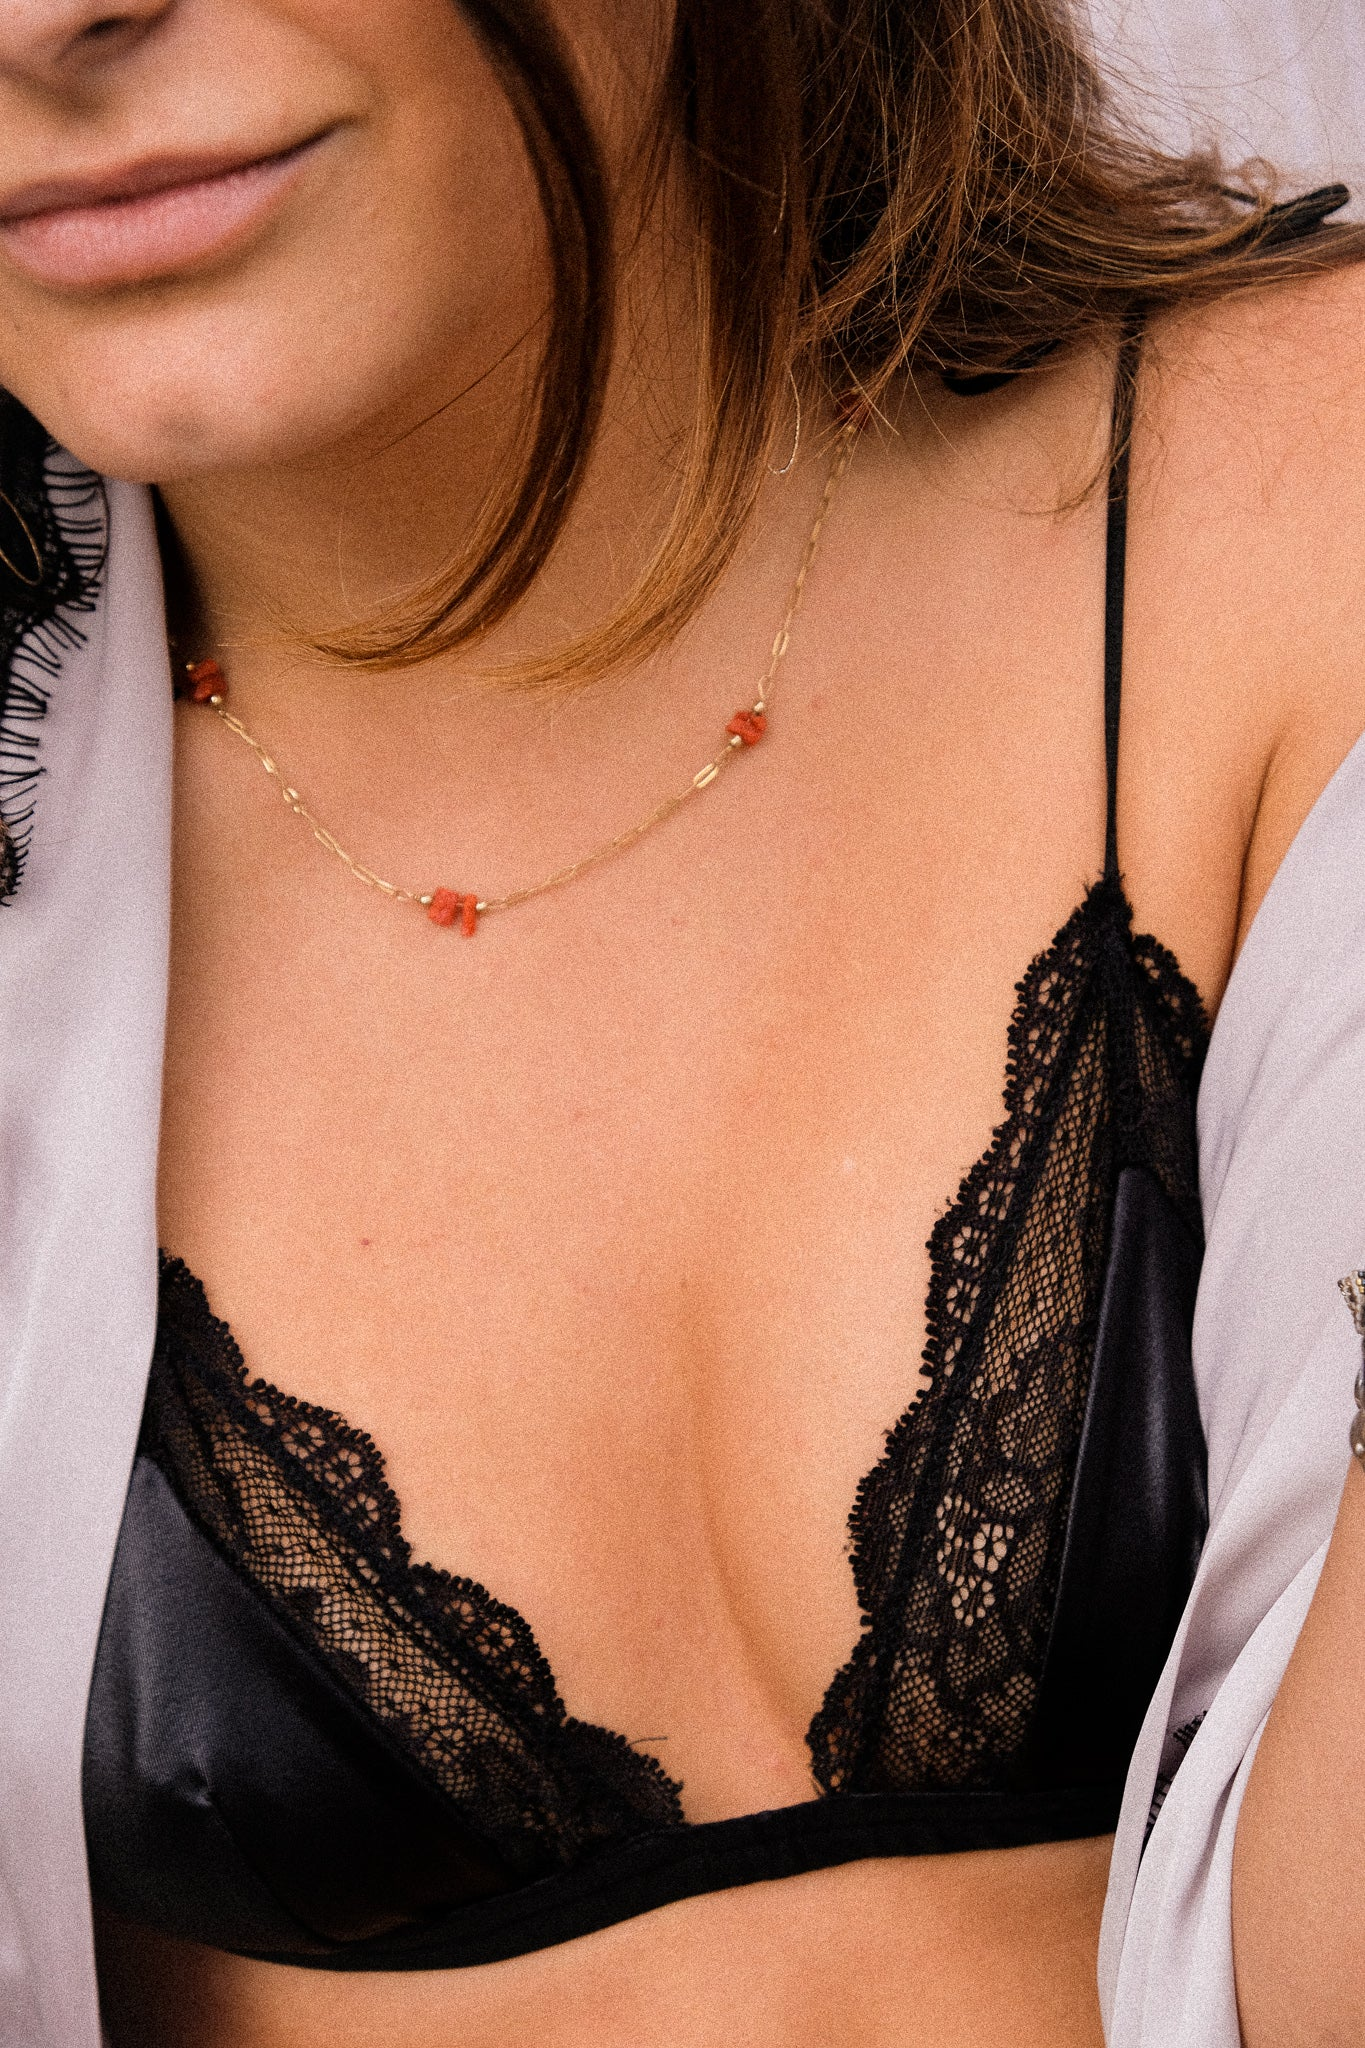 A woman wearing a satin black bralette.